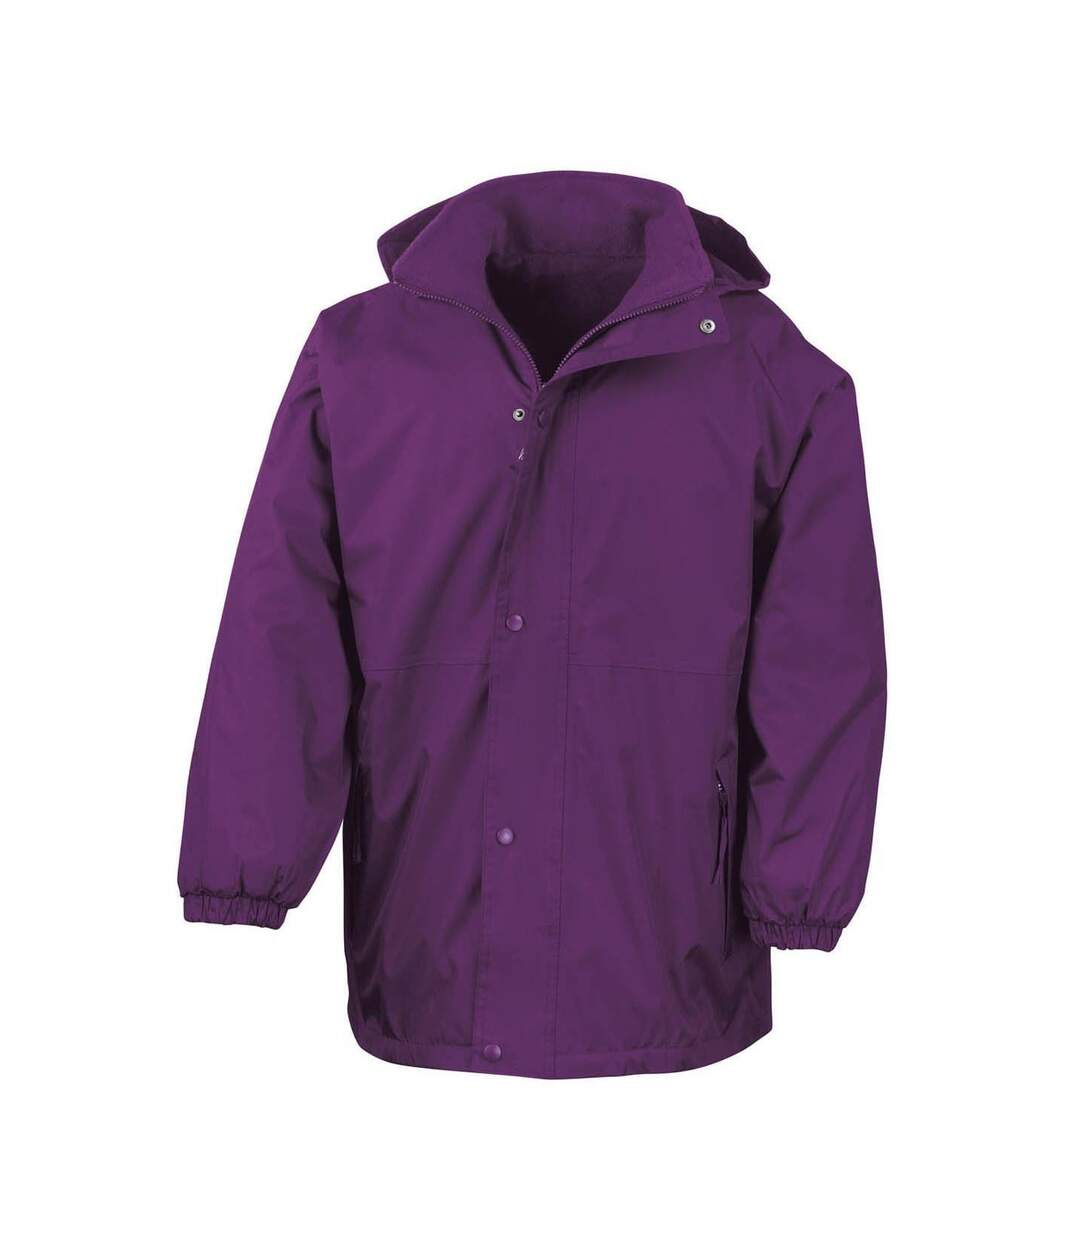 Result Mens Reversible StormDri 4,000 Waterproof Windproof Anti Pilling Fleece Jacket (Purple) - UTBC884